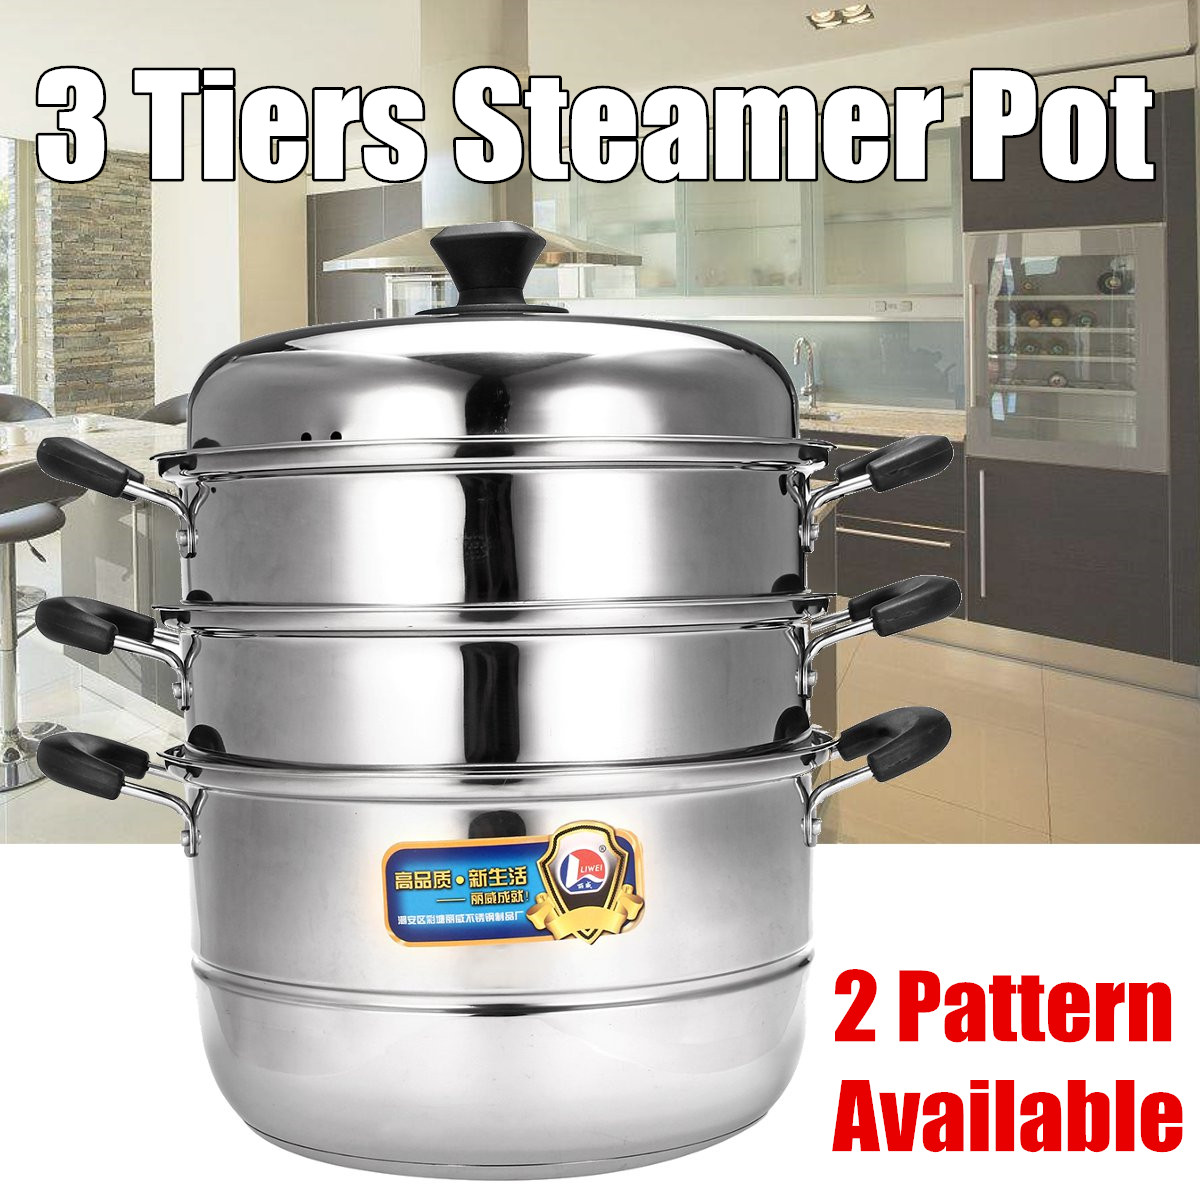 Multi-function Steamer Stainless Steel Steam Pot Cookware Home Kitchen Cooking Steamers Boiler Tools Induction Cooker 3 Tier